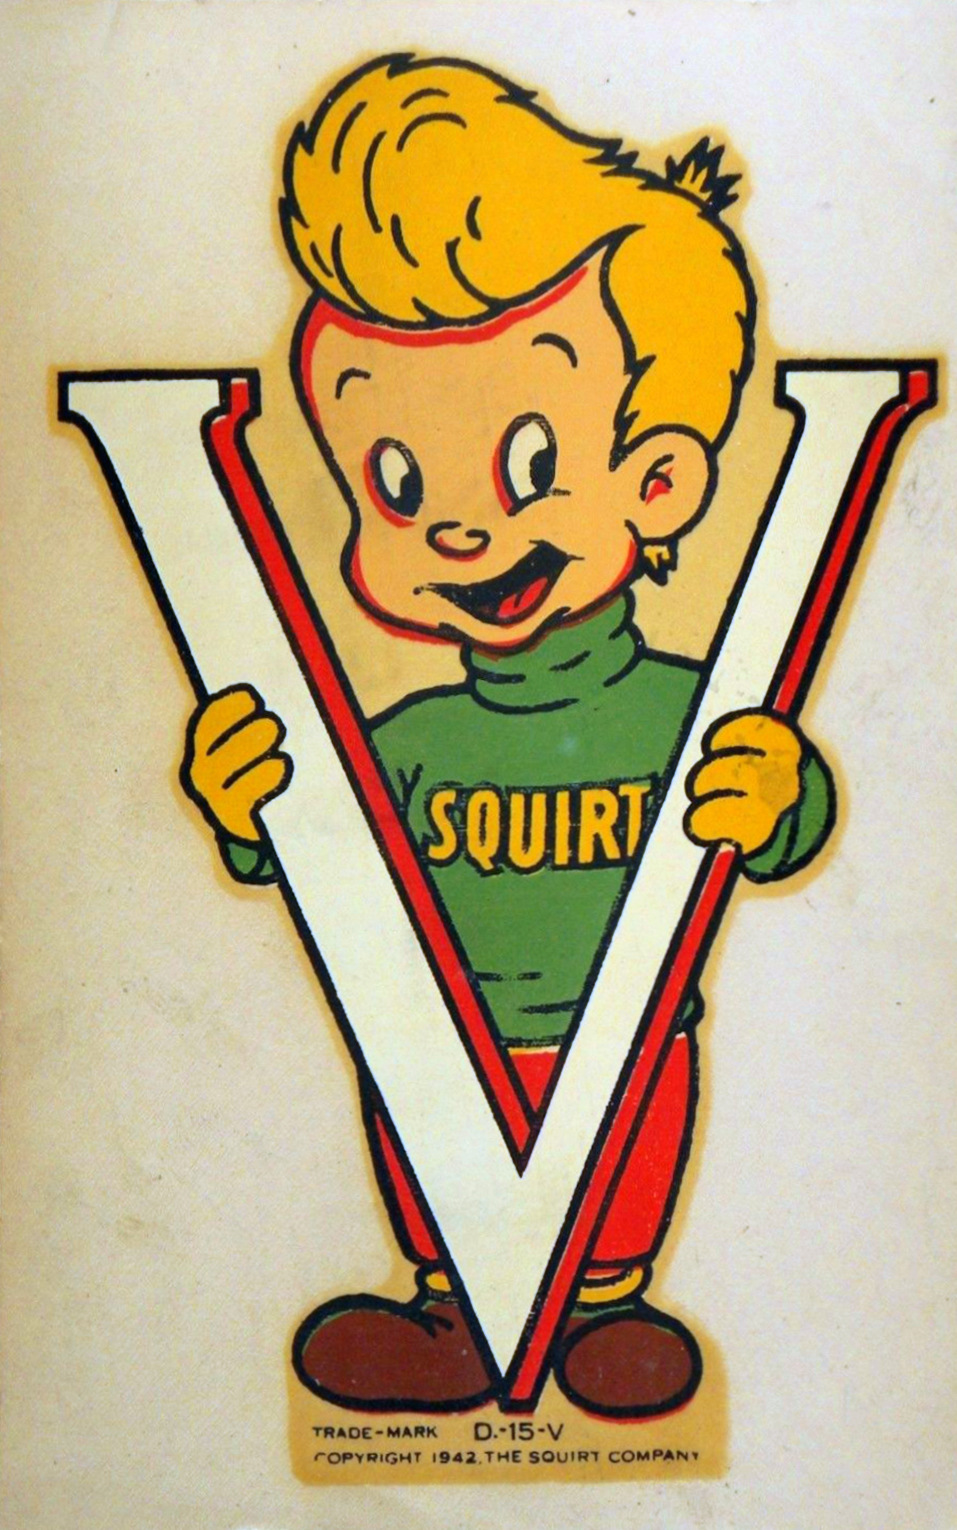 The Squirt Company 'V for Victory' sticker